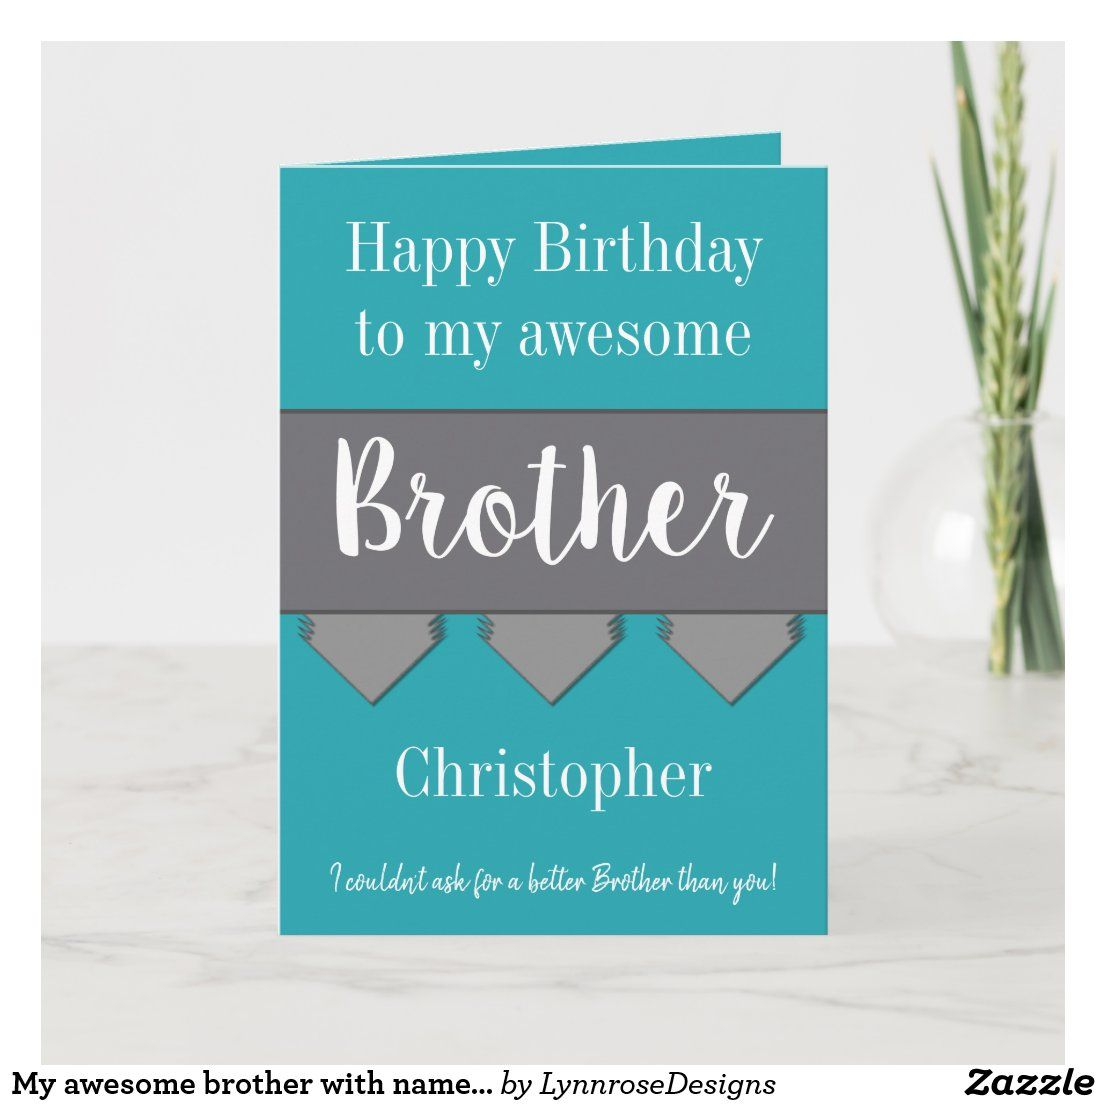 My Awesome Brother With Name Turquoise Birthday Card Zazzle Co Uk Birthday Cards For Brother Cool Birthday Cards Birthday Cards